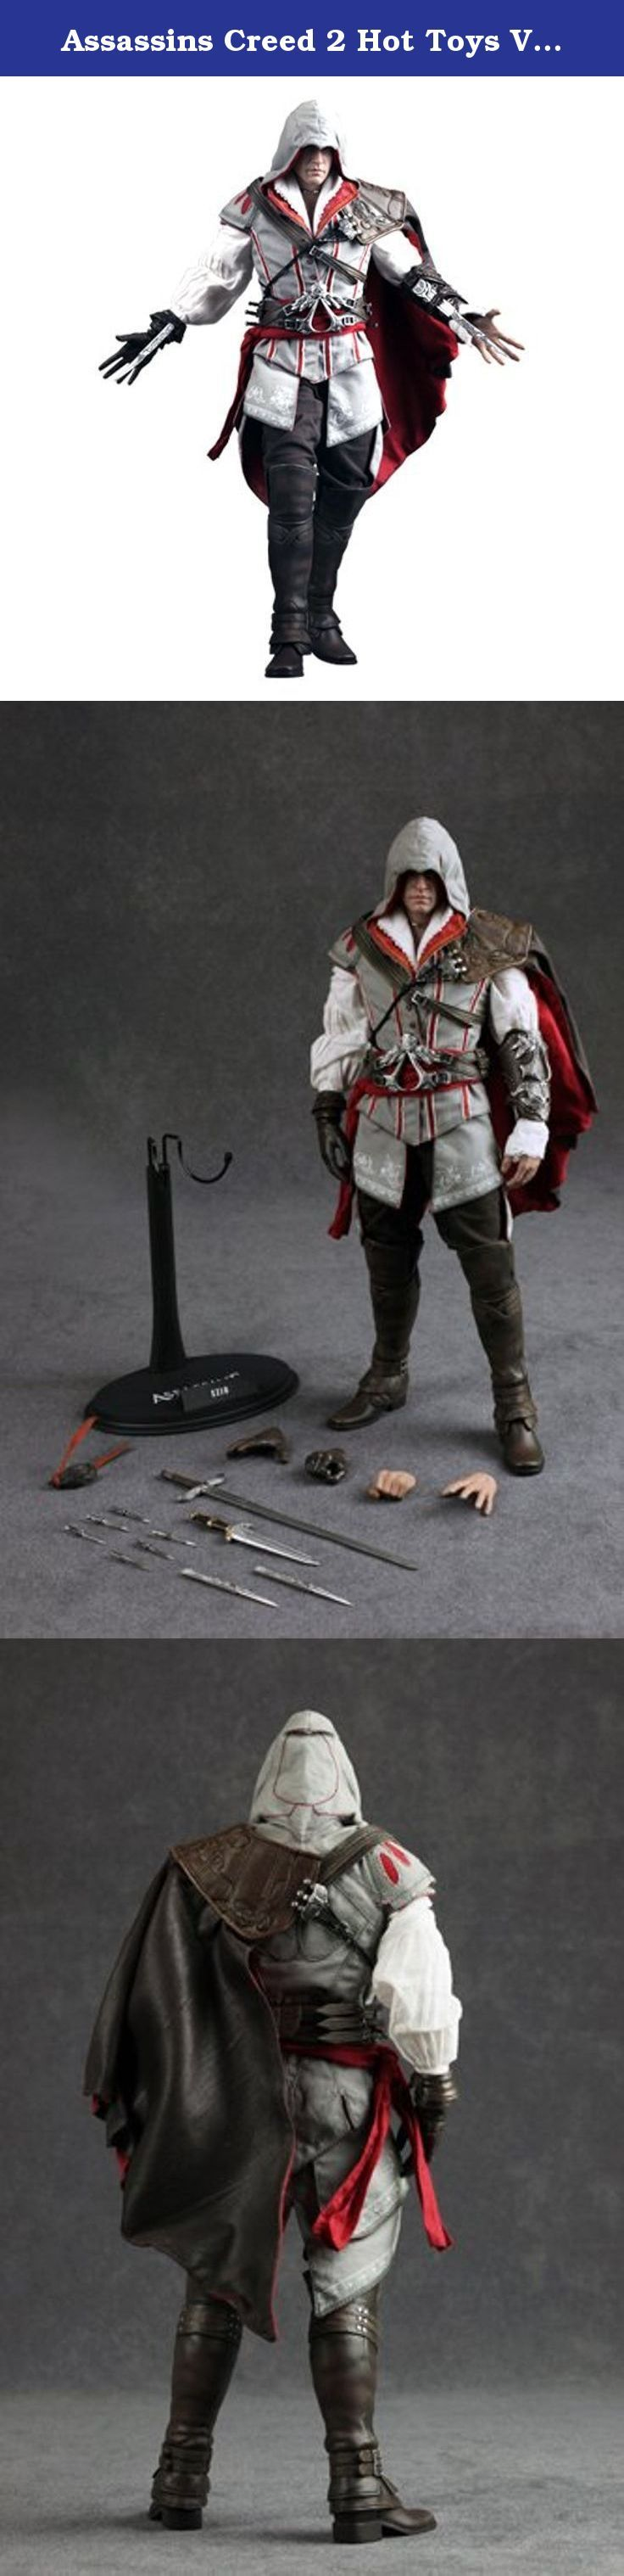 Assassins Creed 2 Hot Toys Video Game Masterpiece 1/6